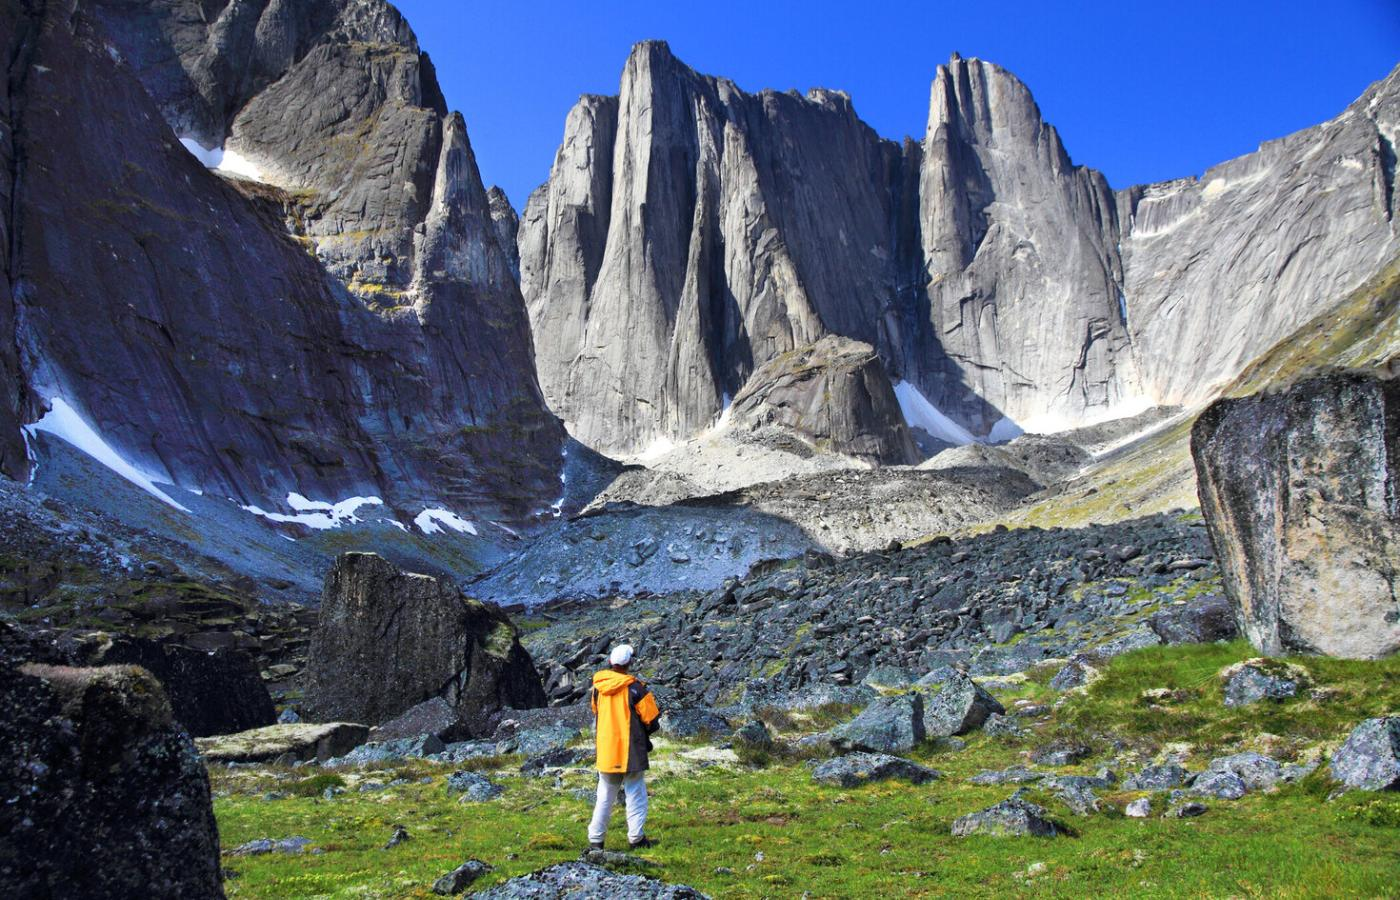 A breathtaking view of the Cirque of the Unclimbables in the Nahanni National Park Reserve in Canada's Northwest Territories